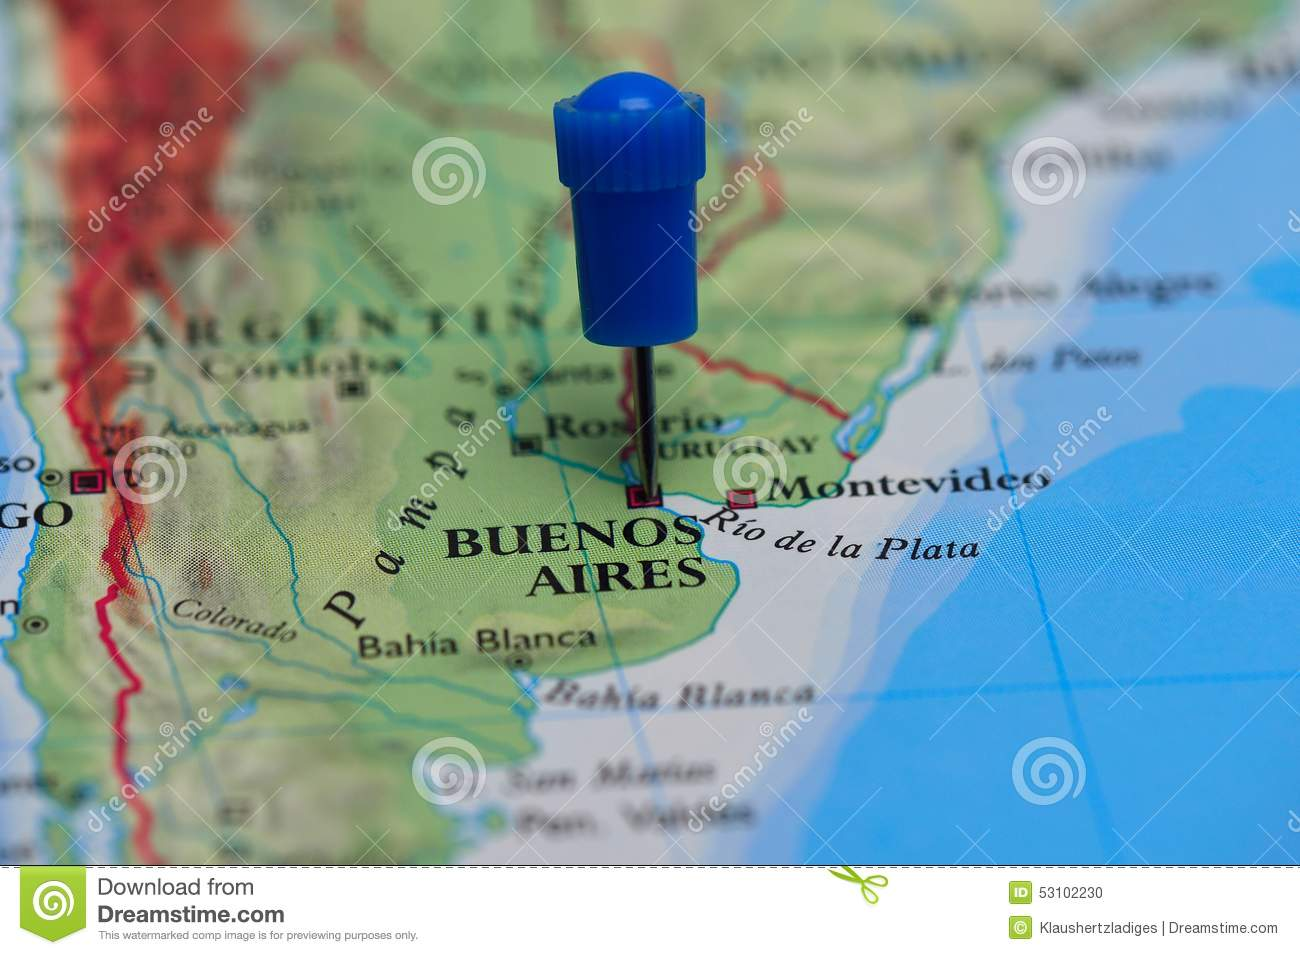 physical map of argentina with Stock Photo Map Pin Buenos Aires Argentina Cities Countries Blue Image53102230 on 6633 kaduna City Map Nigeria in addition Bandera De Alemania as well Rail Map together with Large Detailed Old Map Of Barcelona 1943 besides Brazil.